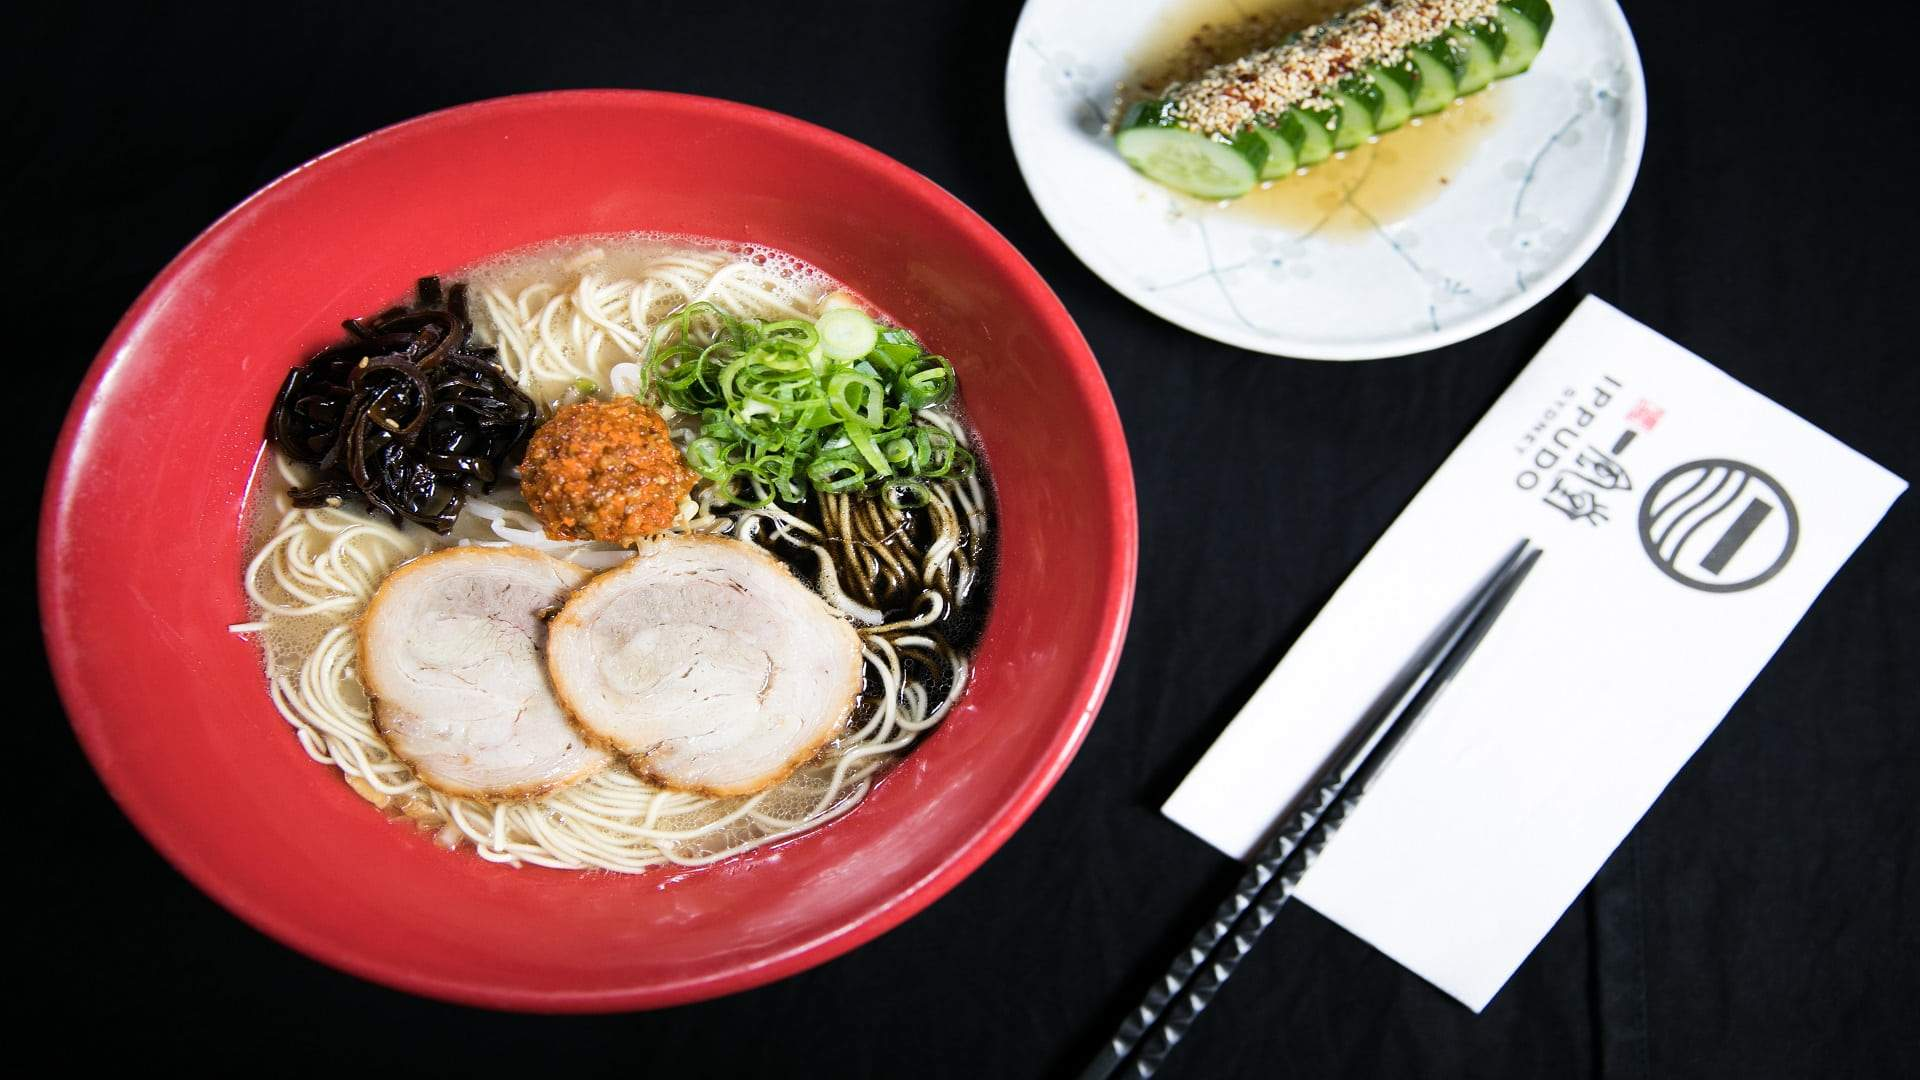 World Renowned Ramen Joint Ippudo Has Finally Opened in Auckland